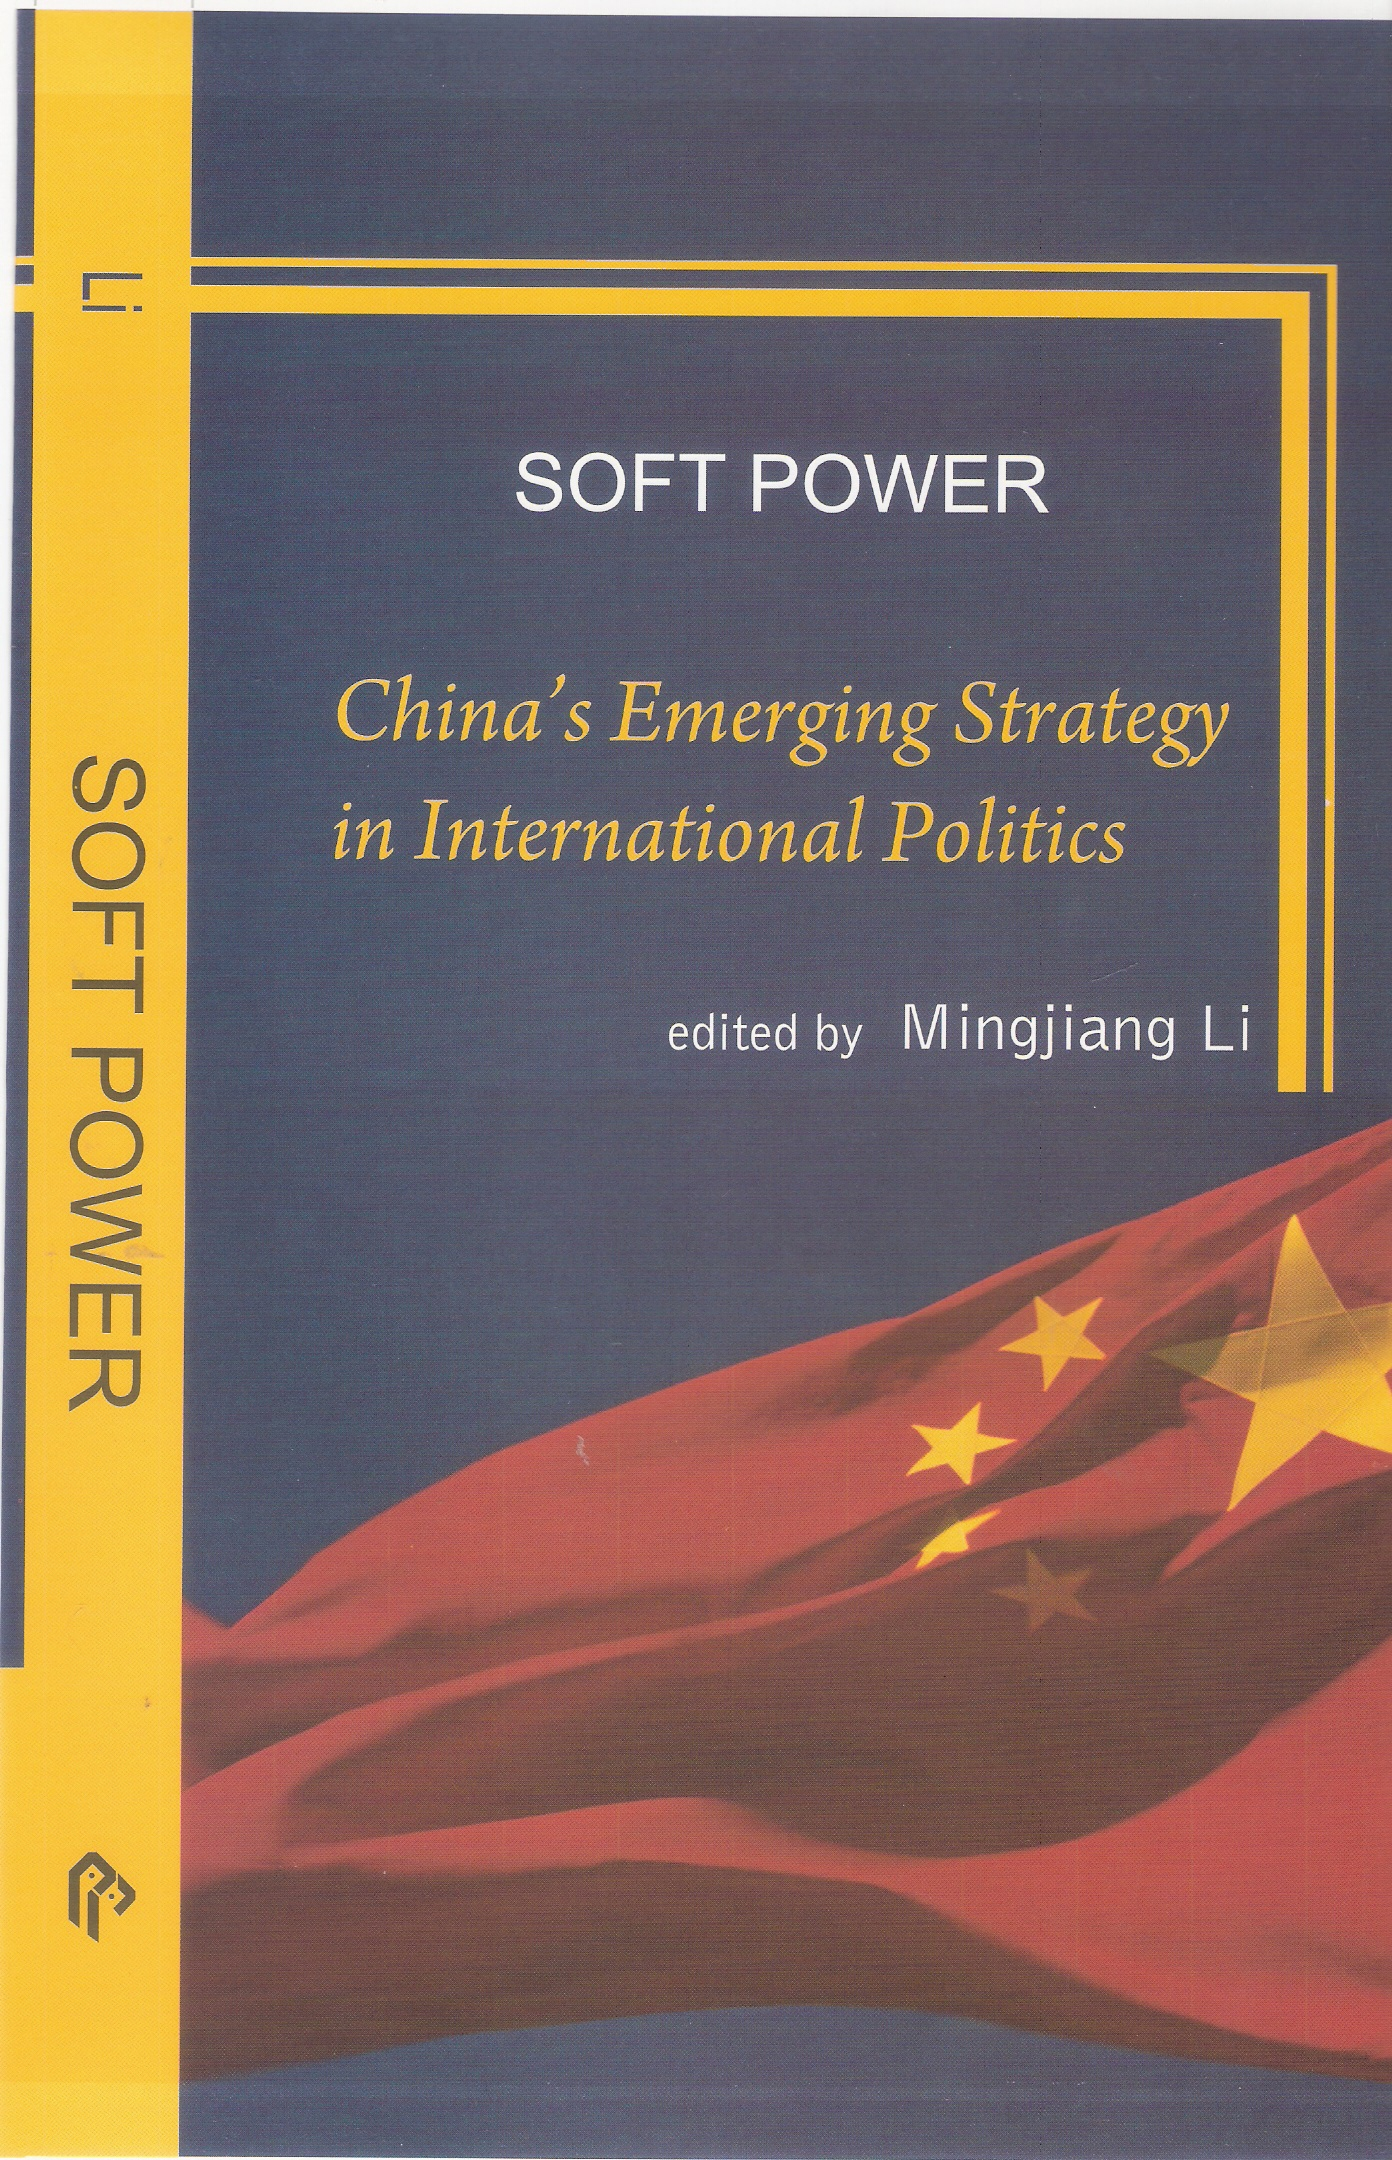 chinas emergence as a superpower Chinese president xi jinping is calling for a world-class military and leading   and economy, but 'west may not be able to understand' its rise to power   military and economic superpower at a week-long gathering of the.